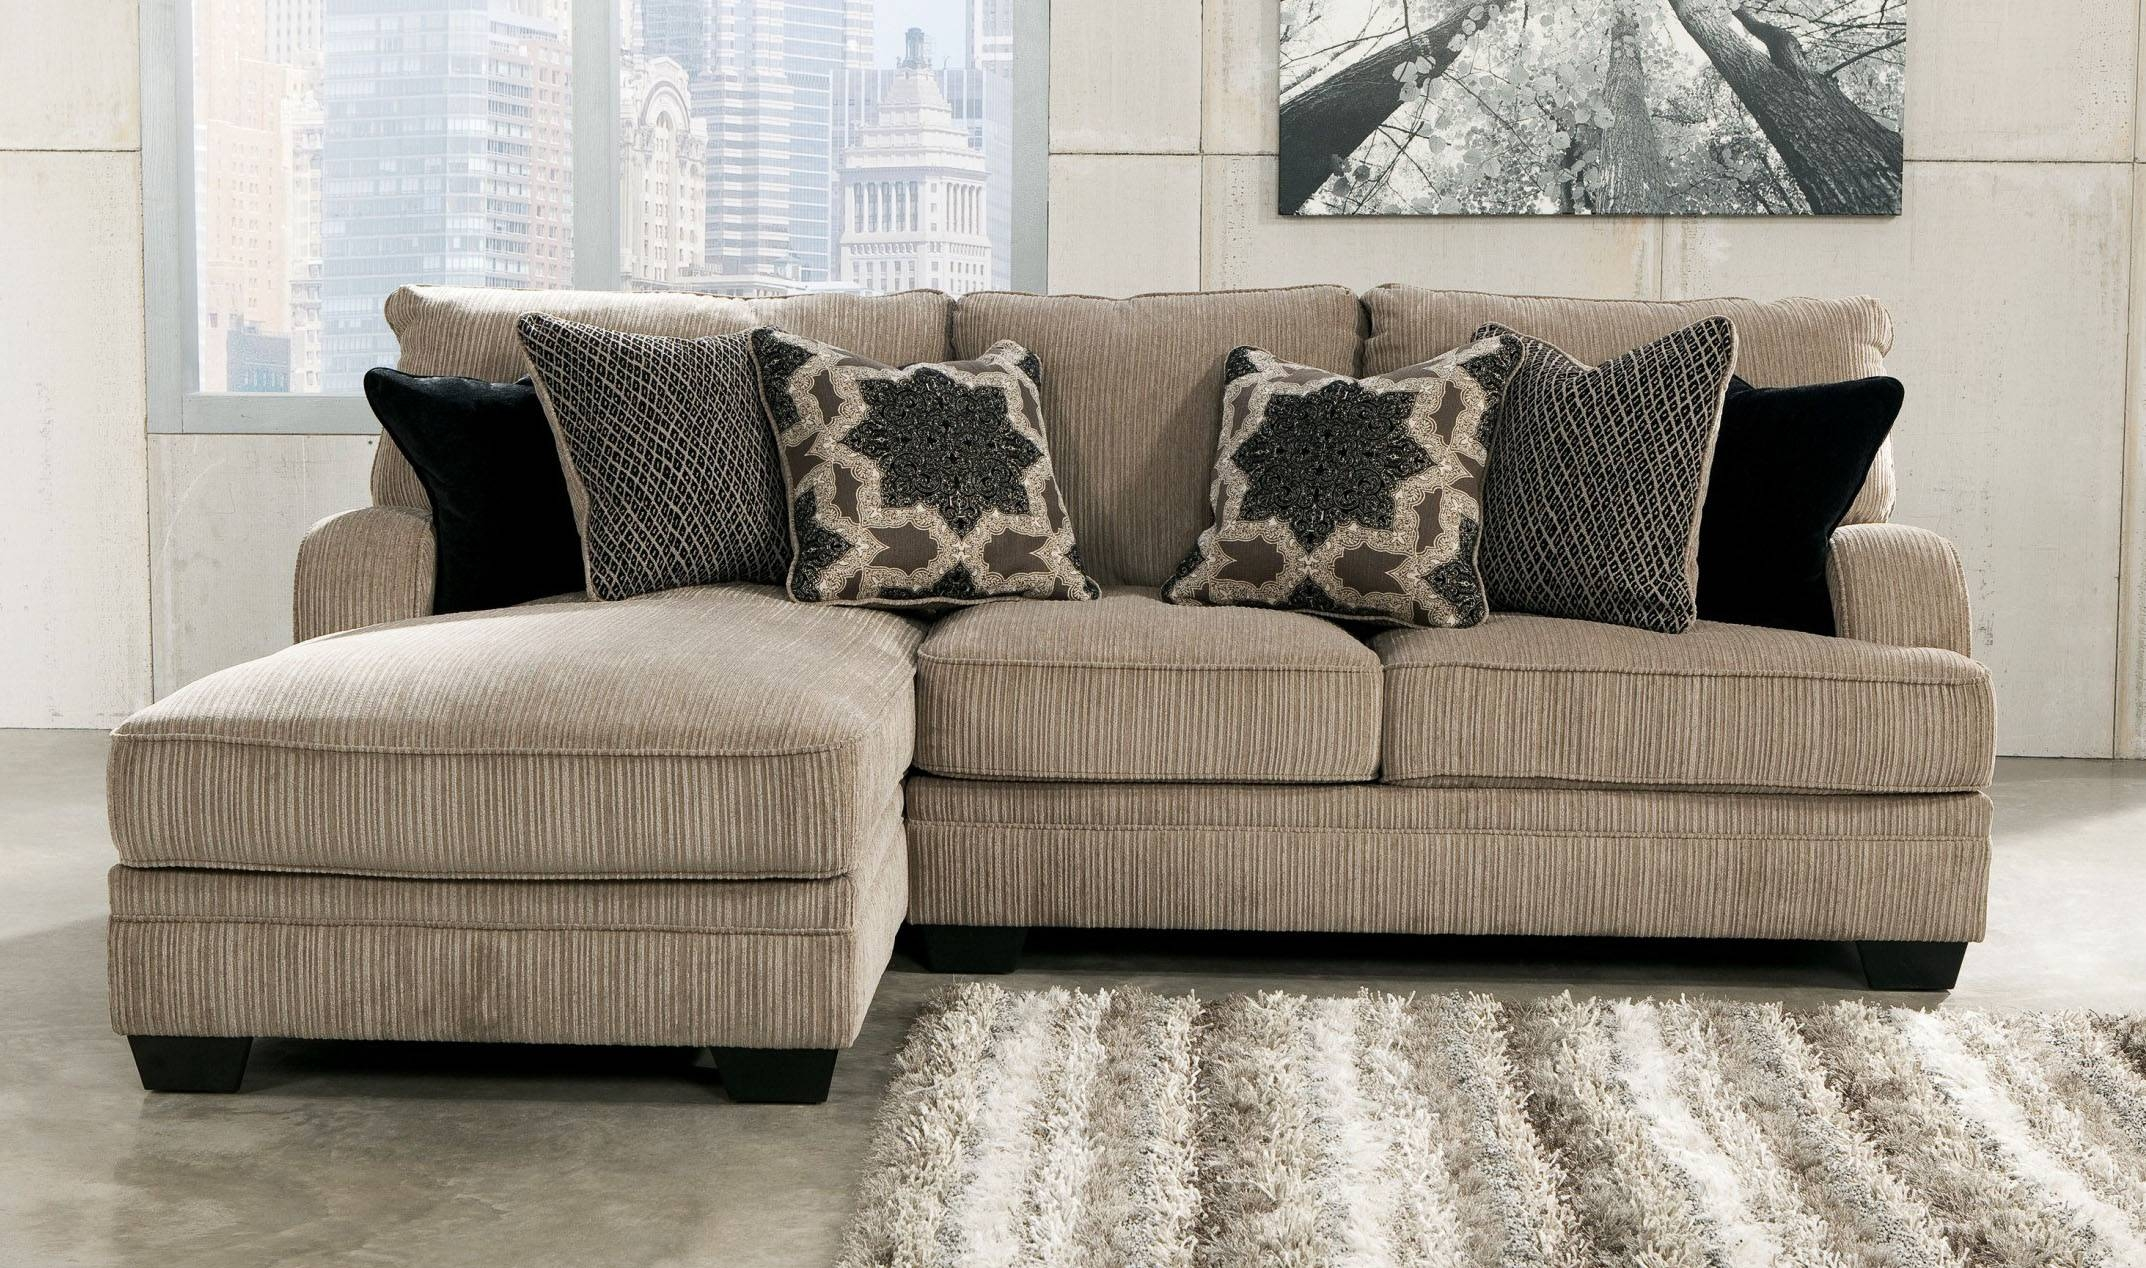 Contemporary Sectional Sofas For Small Spaces Charming Small Scale Pertaining To Small Scale Sectional Sofas (View 5 of 15)